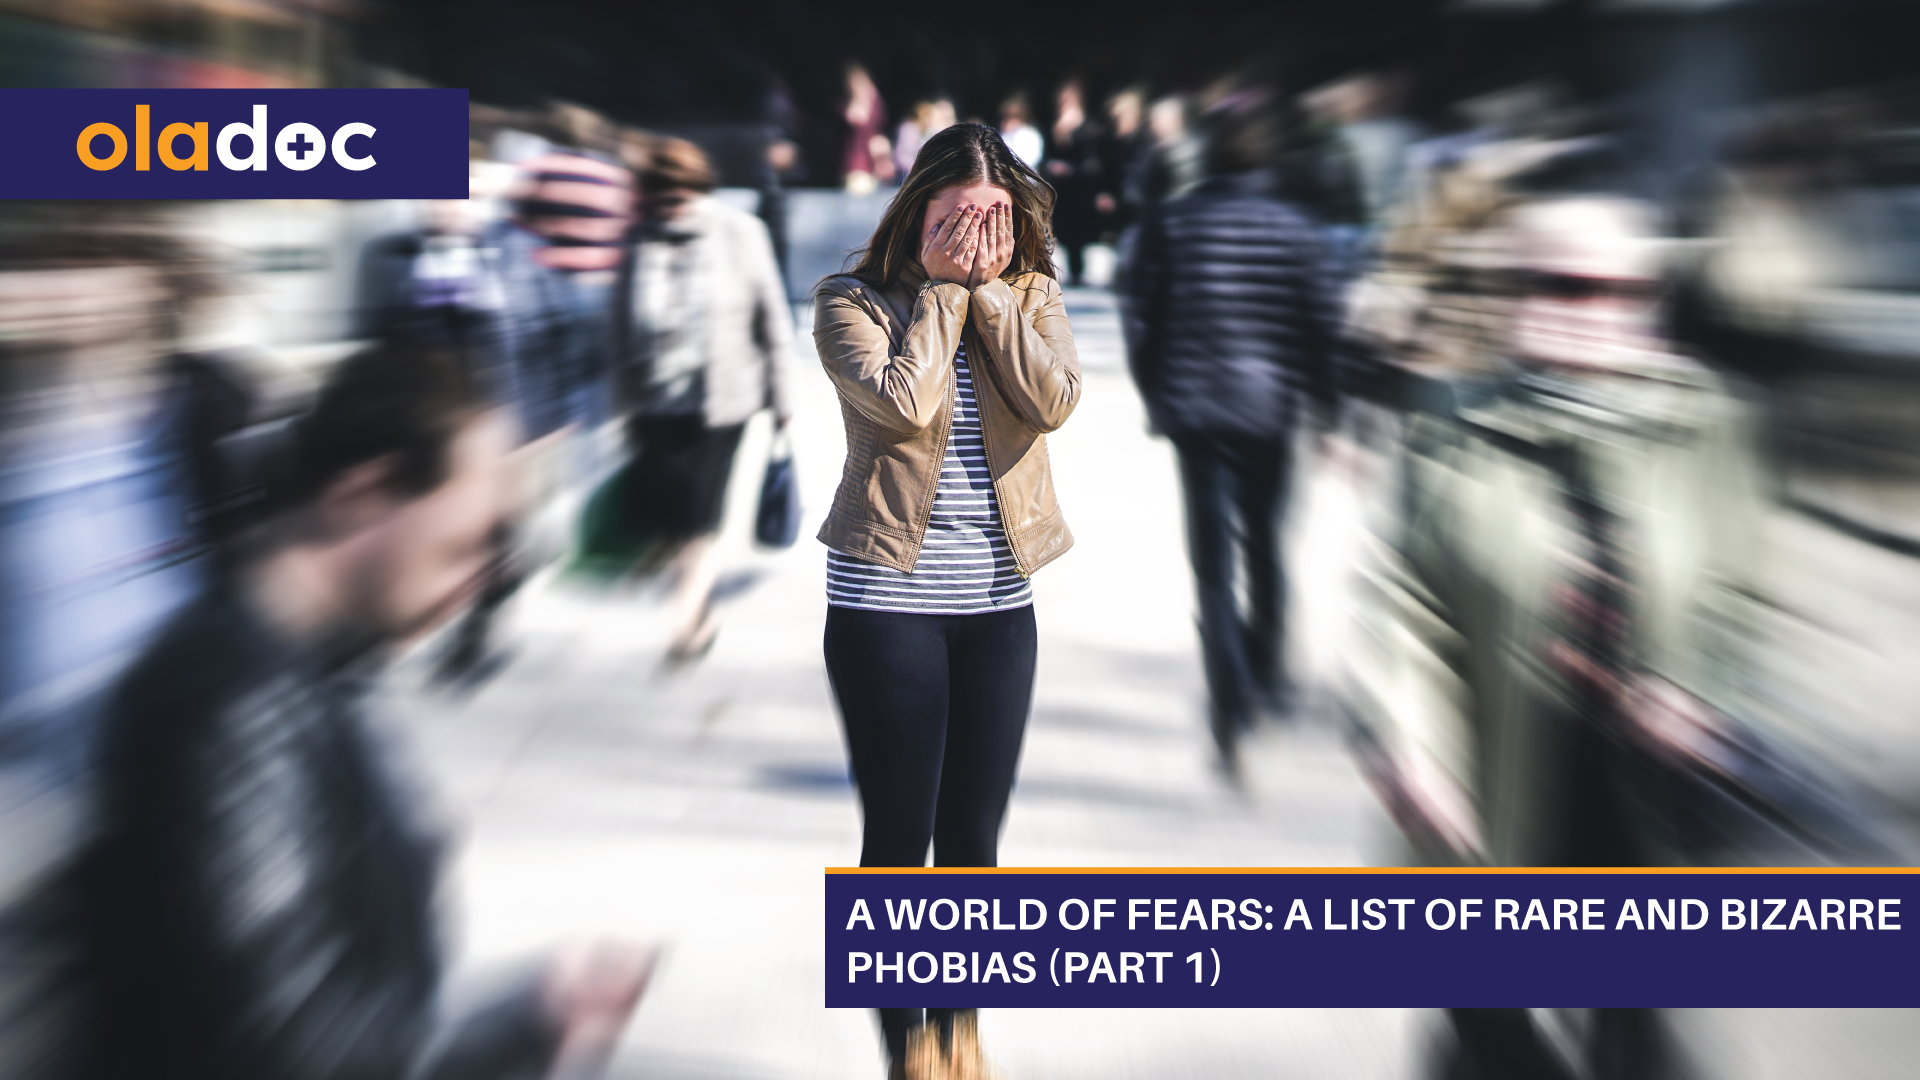 A world of fears